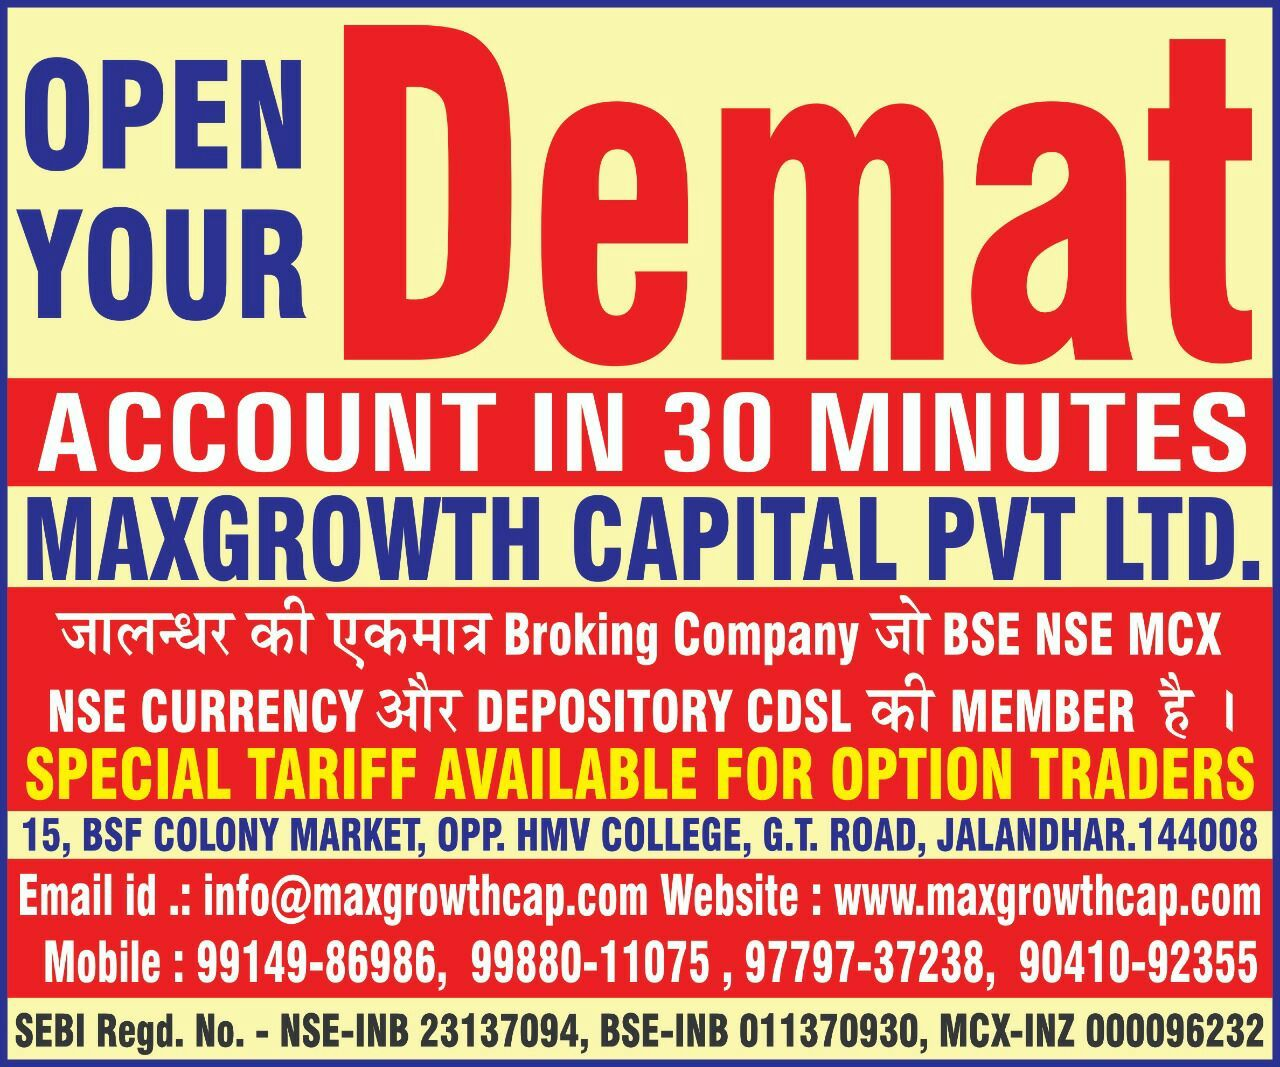 One & Only Broking Company in Jalandhar City that is member with BSE NSE MCX & DEPOSITORY ...